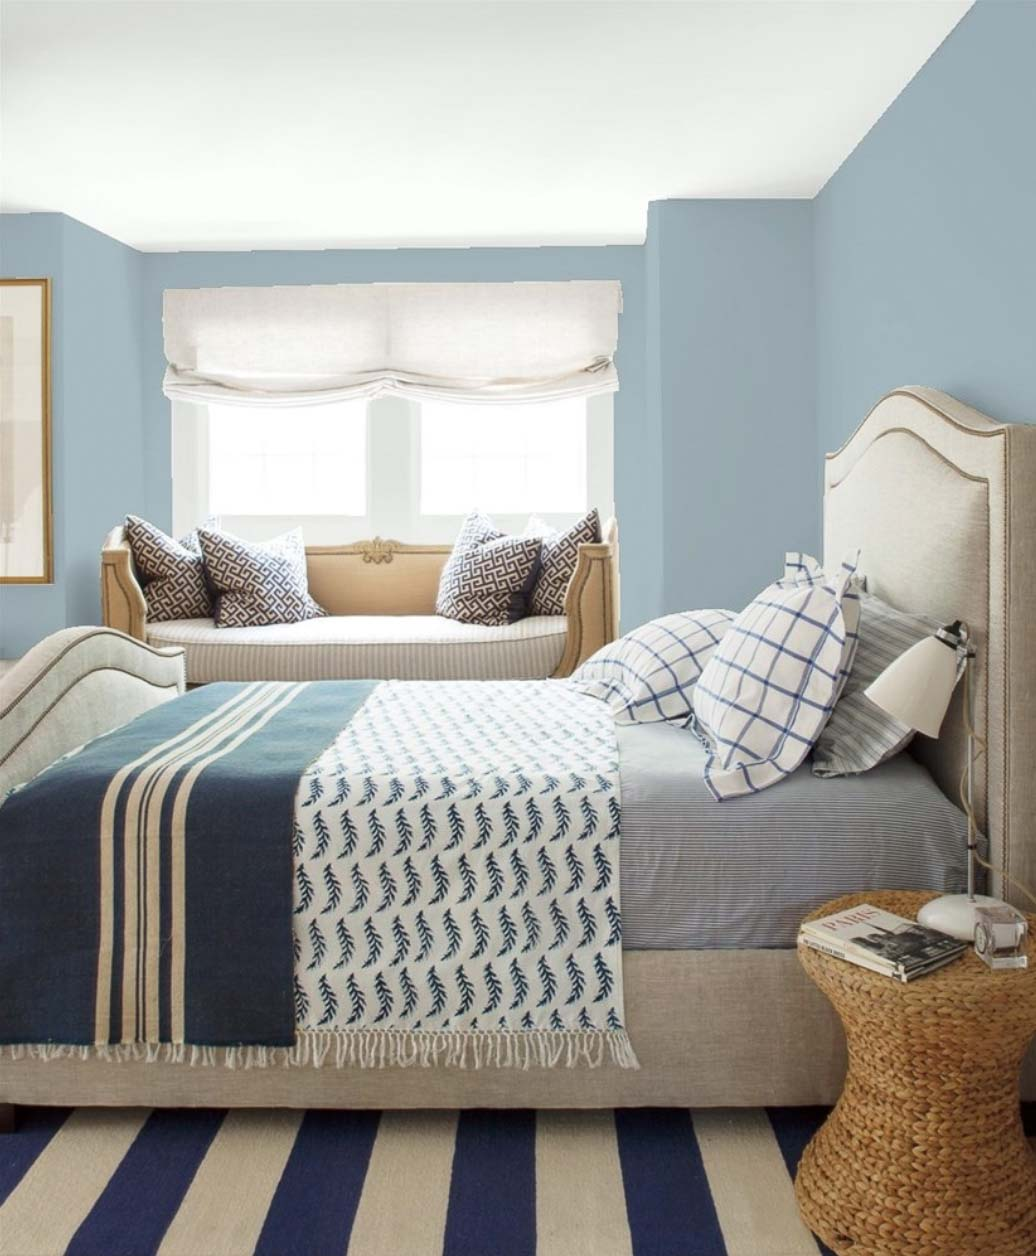 Bedroom Paint Color Ideas You Ll Love 2020 Edition